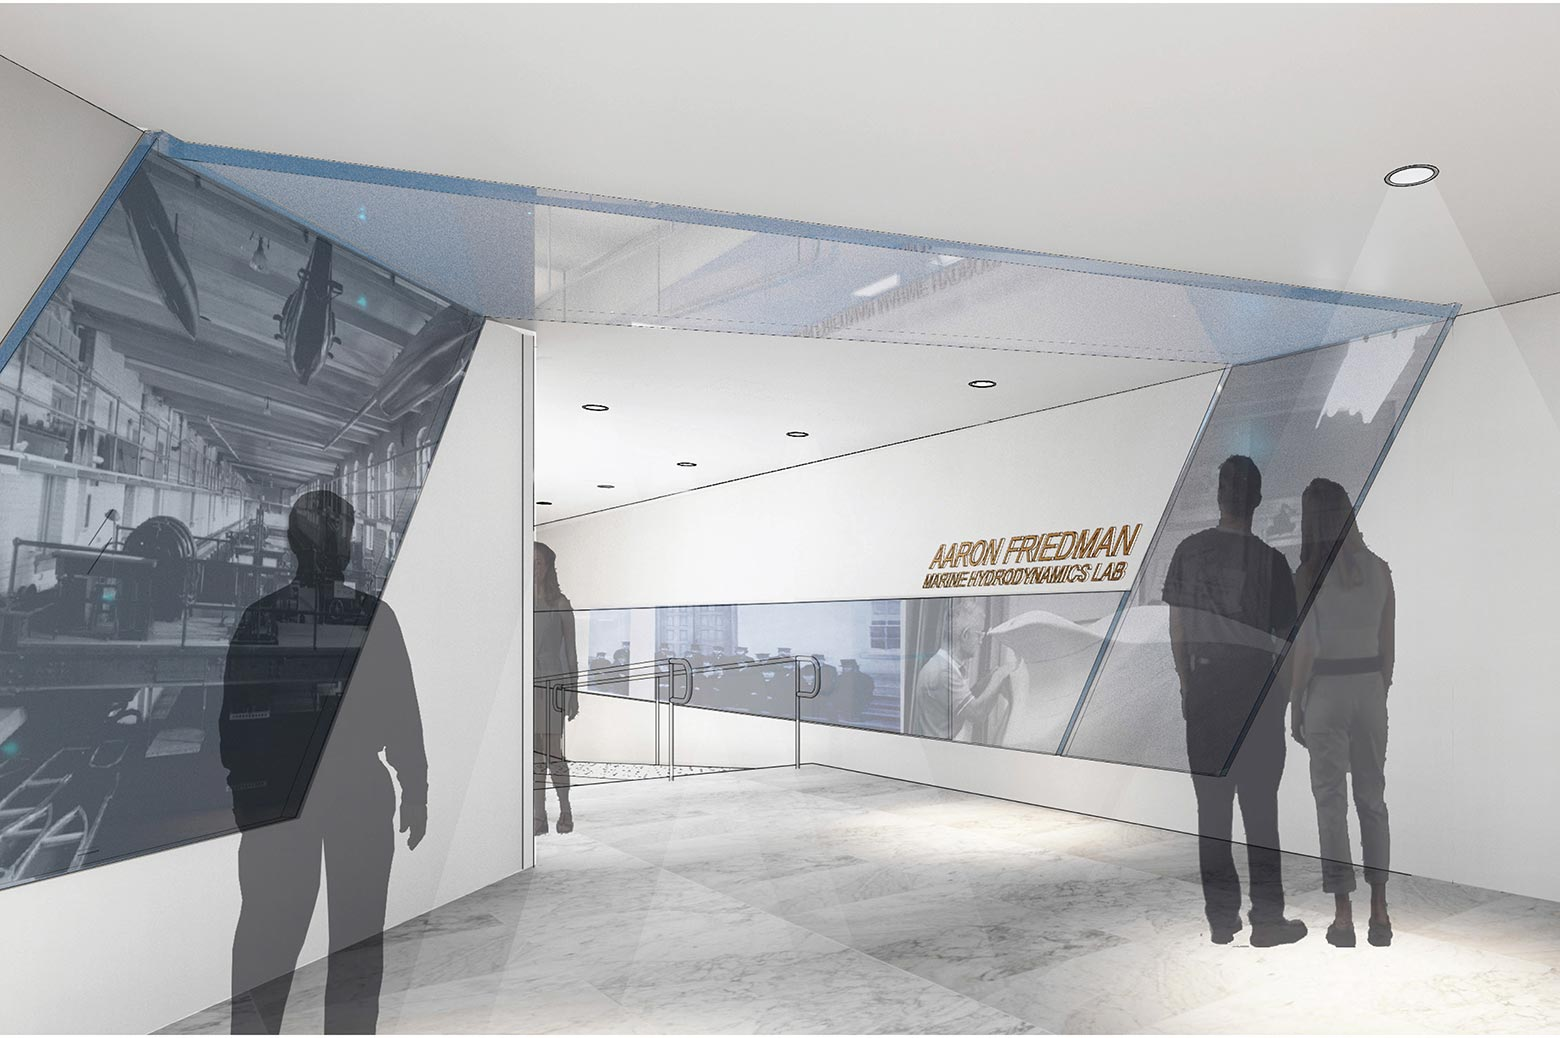 An artist's rendering of the renovated interior vestibule in the Friedman Marine Hydrodynamics Lab.